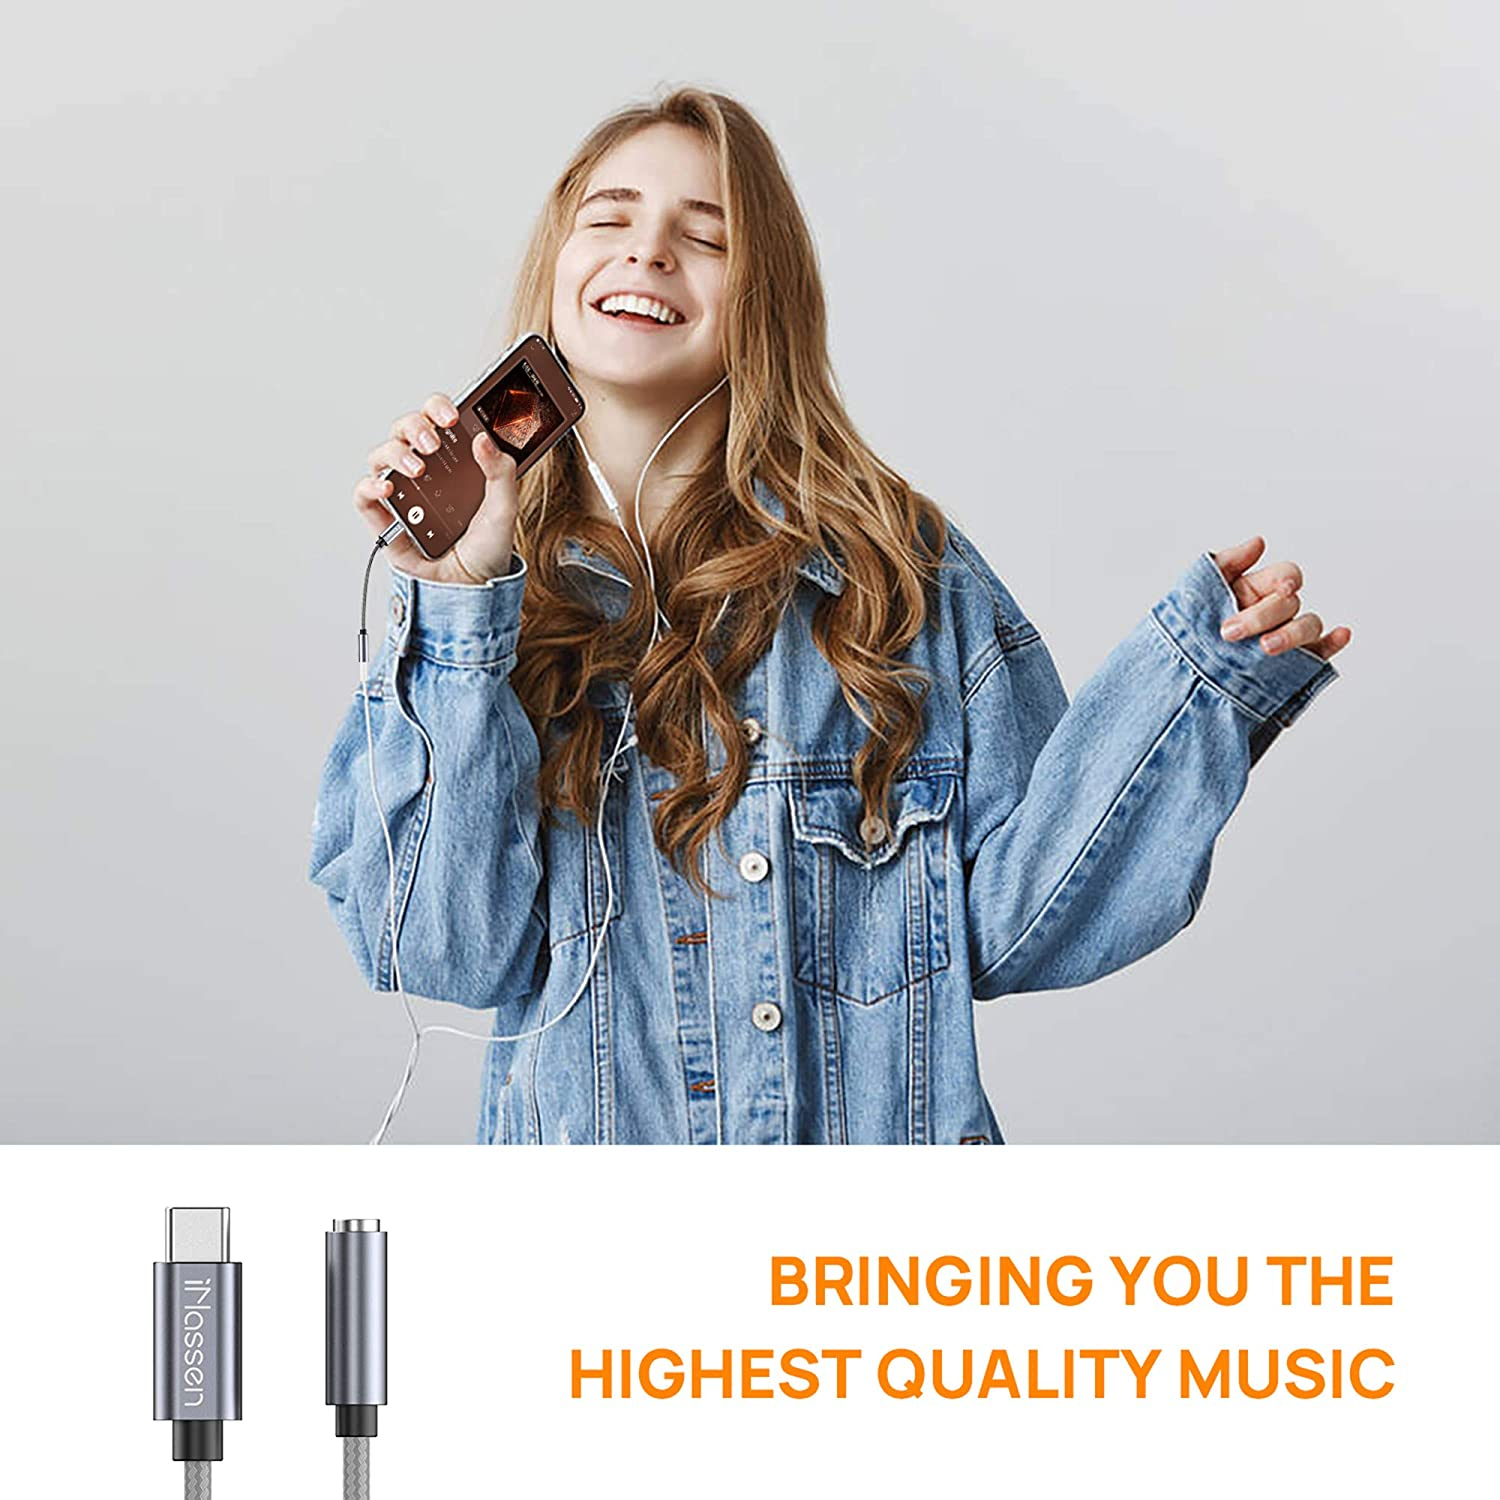 USB C to 3.5mm Headphone Jack Adapter iPad Pro iNassen Type C to Aux Audio Dongle Cable Cord 384khz-32bit Hi-Res DAC for Pixel 4 3 2 XL Samsung Galaxy S20 Ultra Z Flip S20+ Note 10 Note 10+ Grey